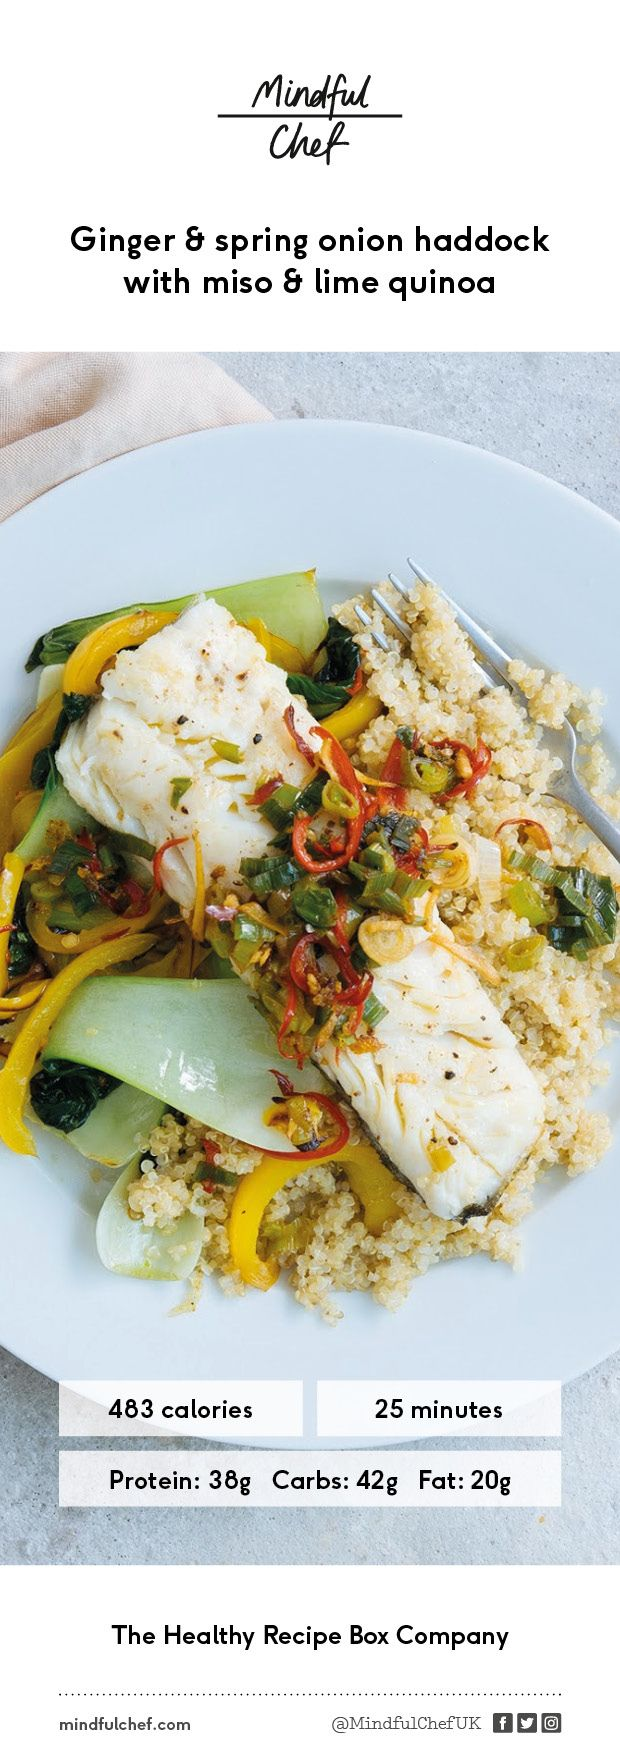 Healthy ginger & spring onion haddock with miso & lime quinoa | Fish Recipe | gluten-free, dairy free, no refined carbs | Easy prep | We deliver all the pre-portioned ingredients needed to make our dinners in under 30 minutes